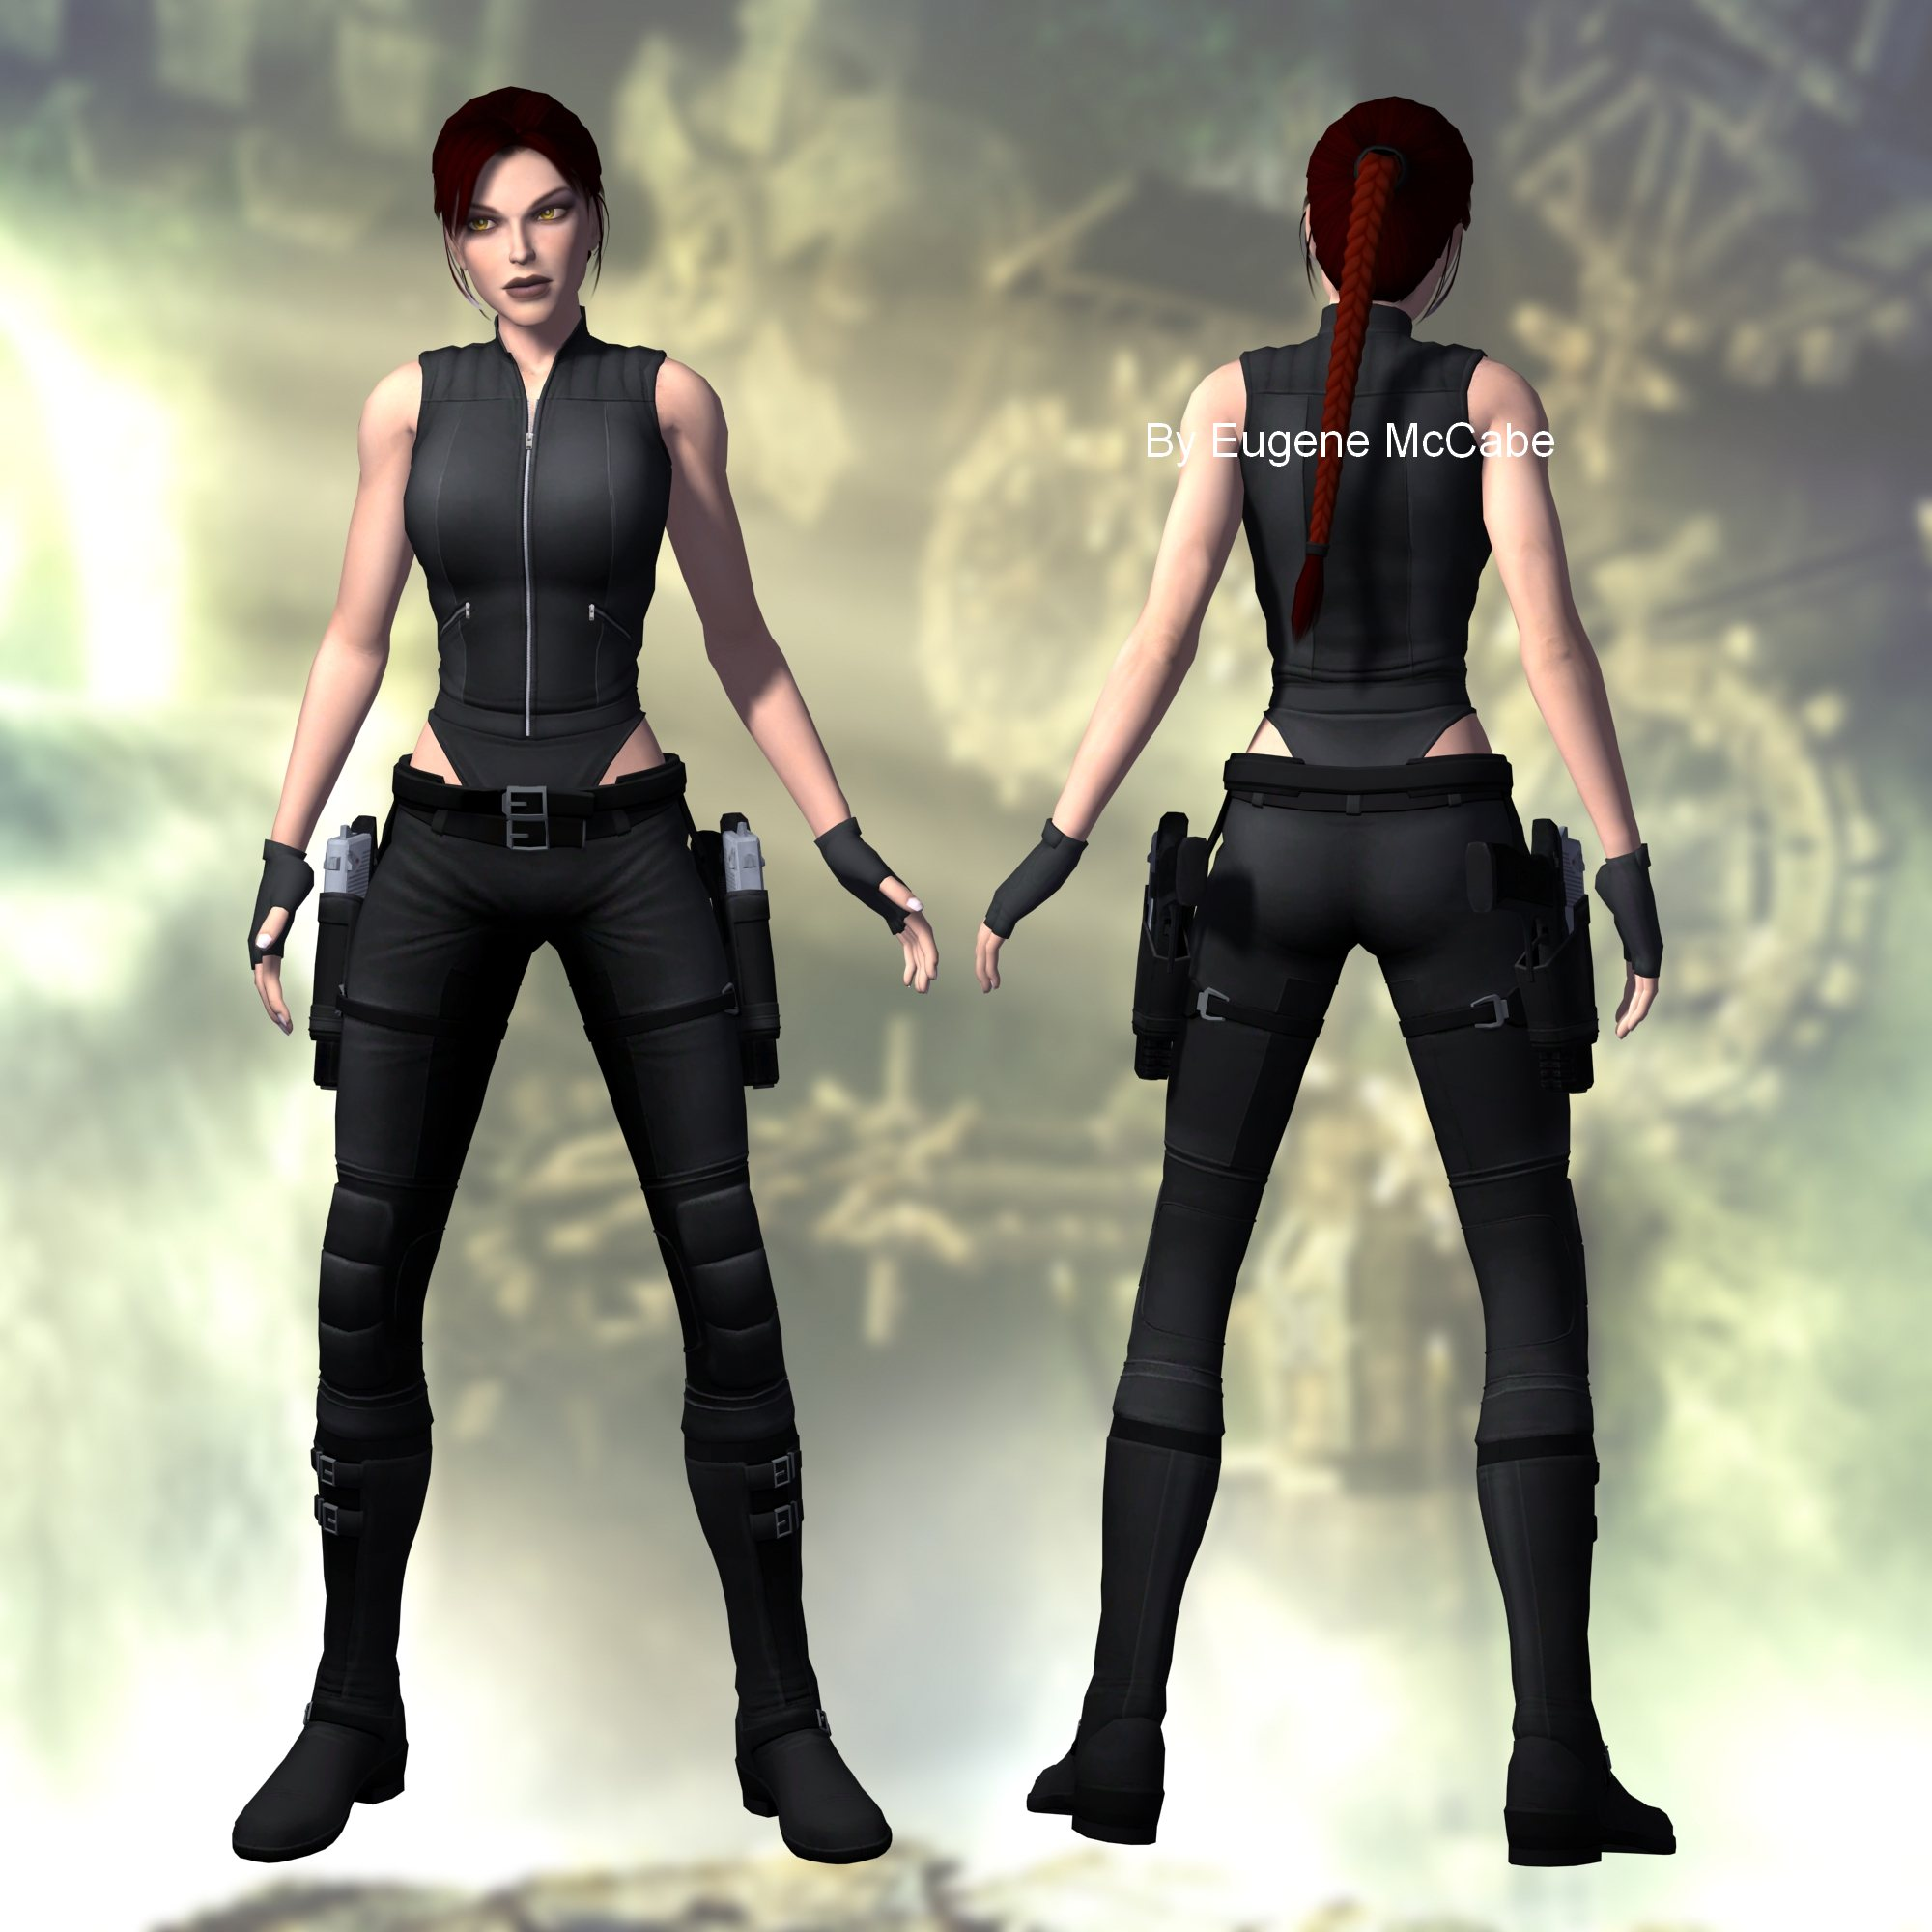 Tomb raider 2023 outfits pron image